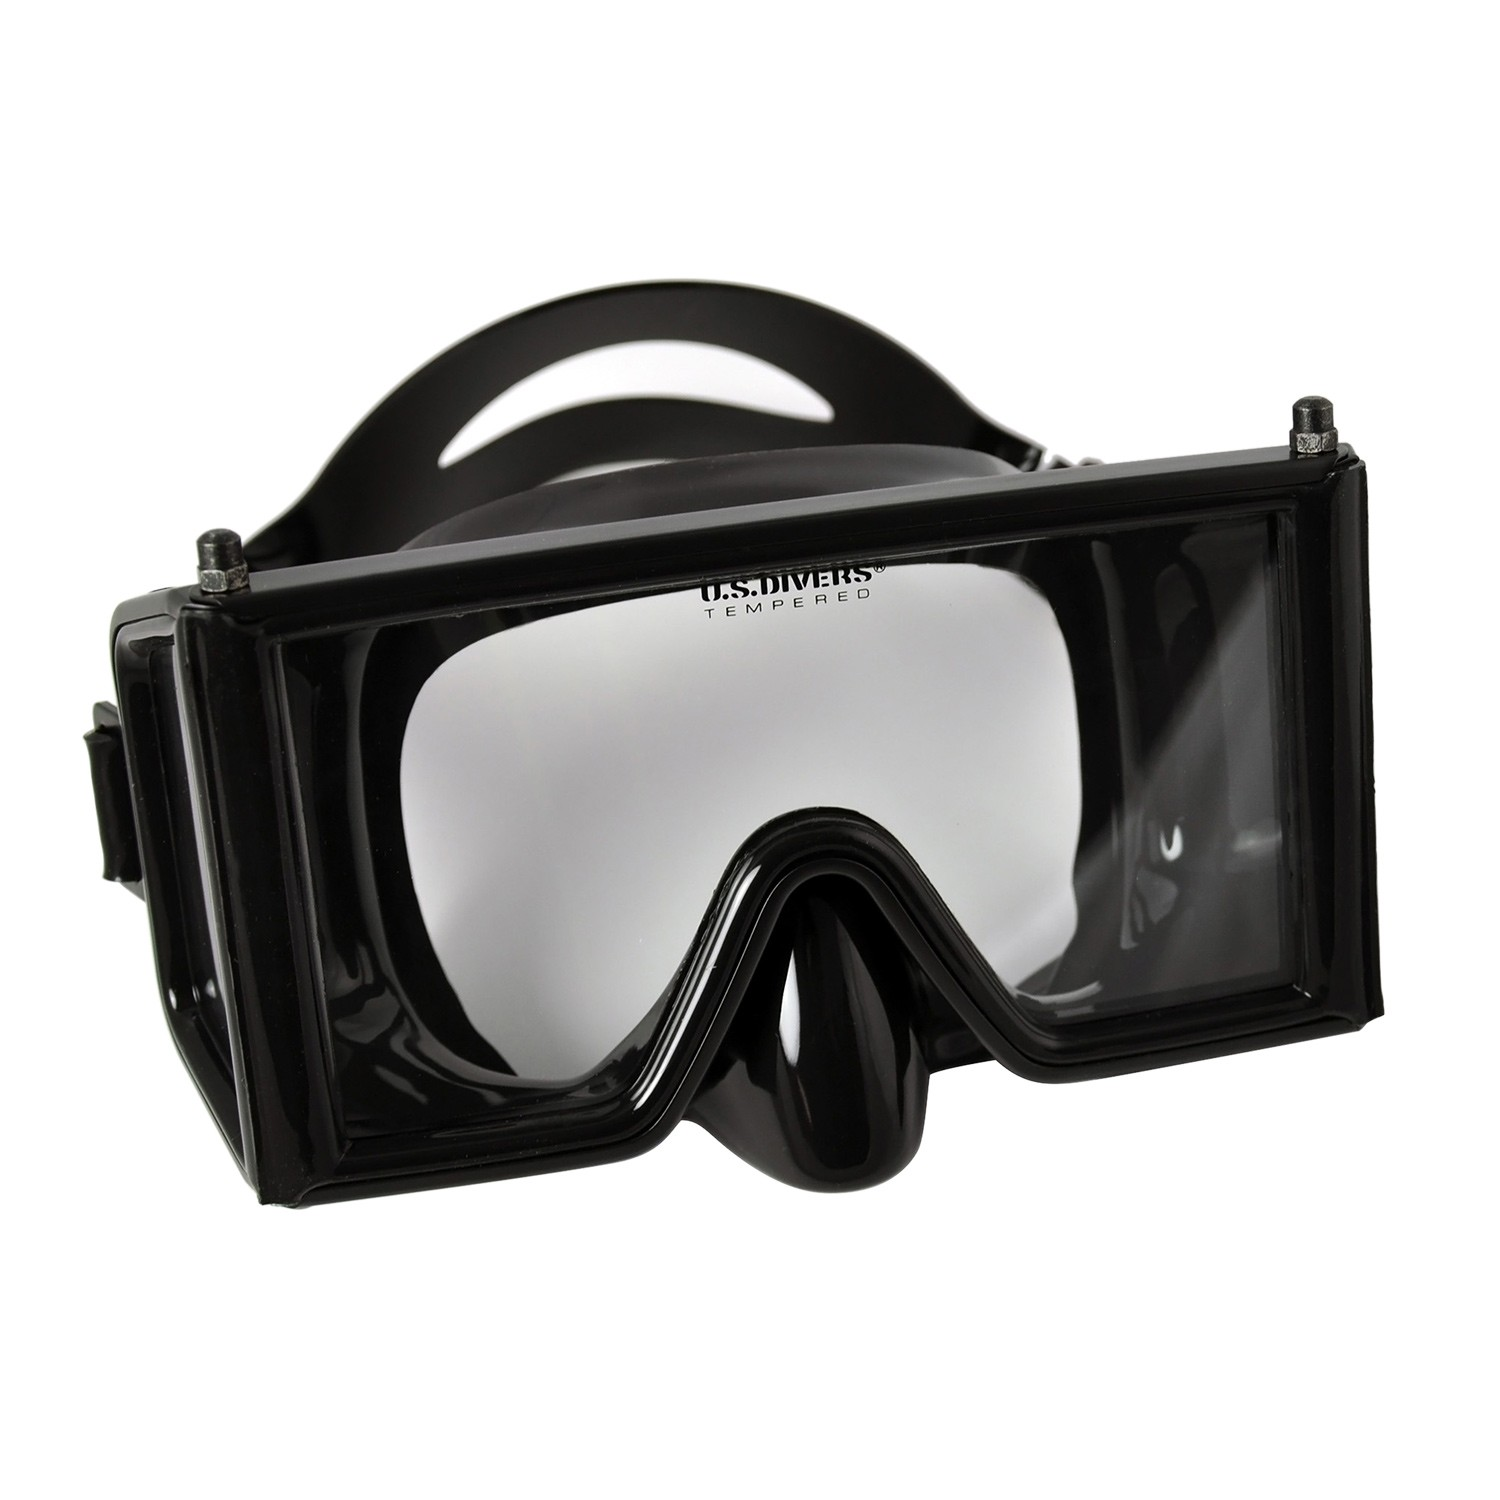 Aqua Lung Wraparound Scuba Mask